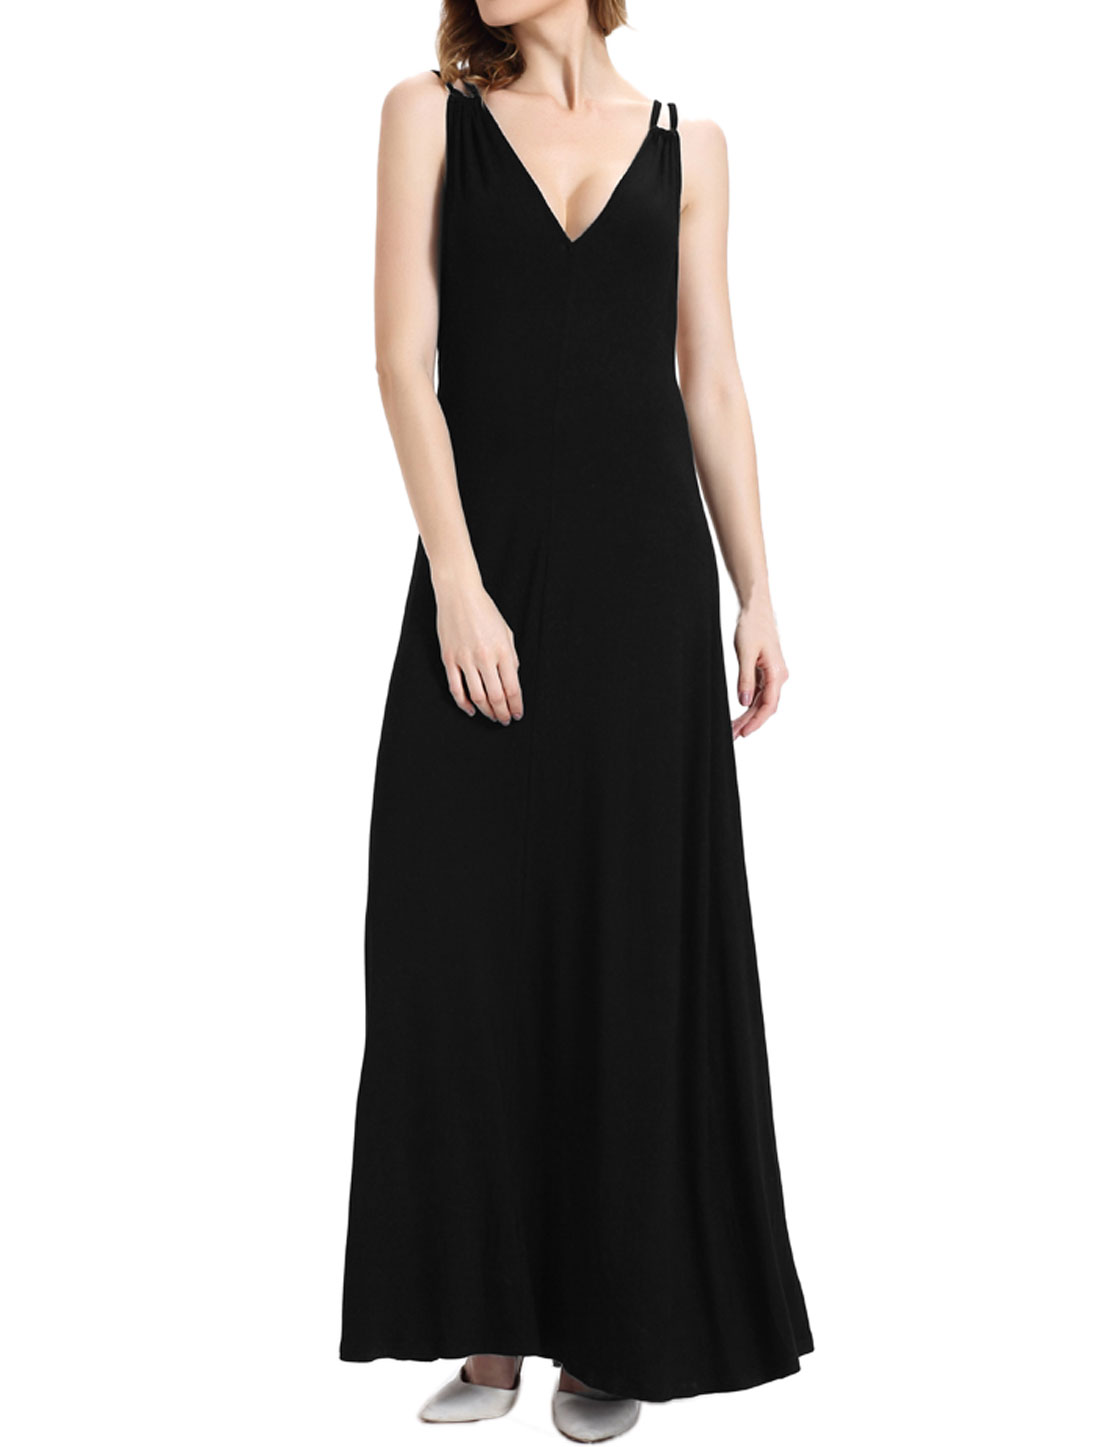 Women Deep V Neck Backless Maxi Party Dress Black M